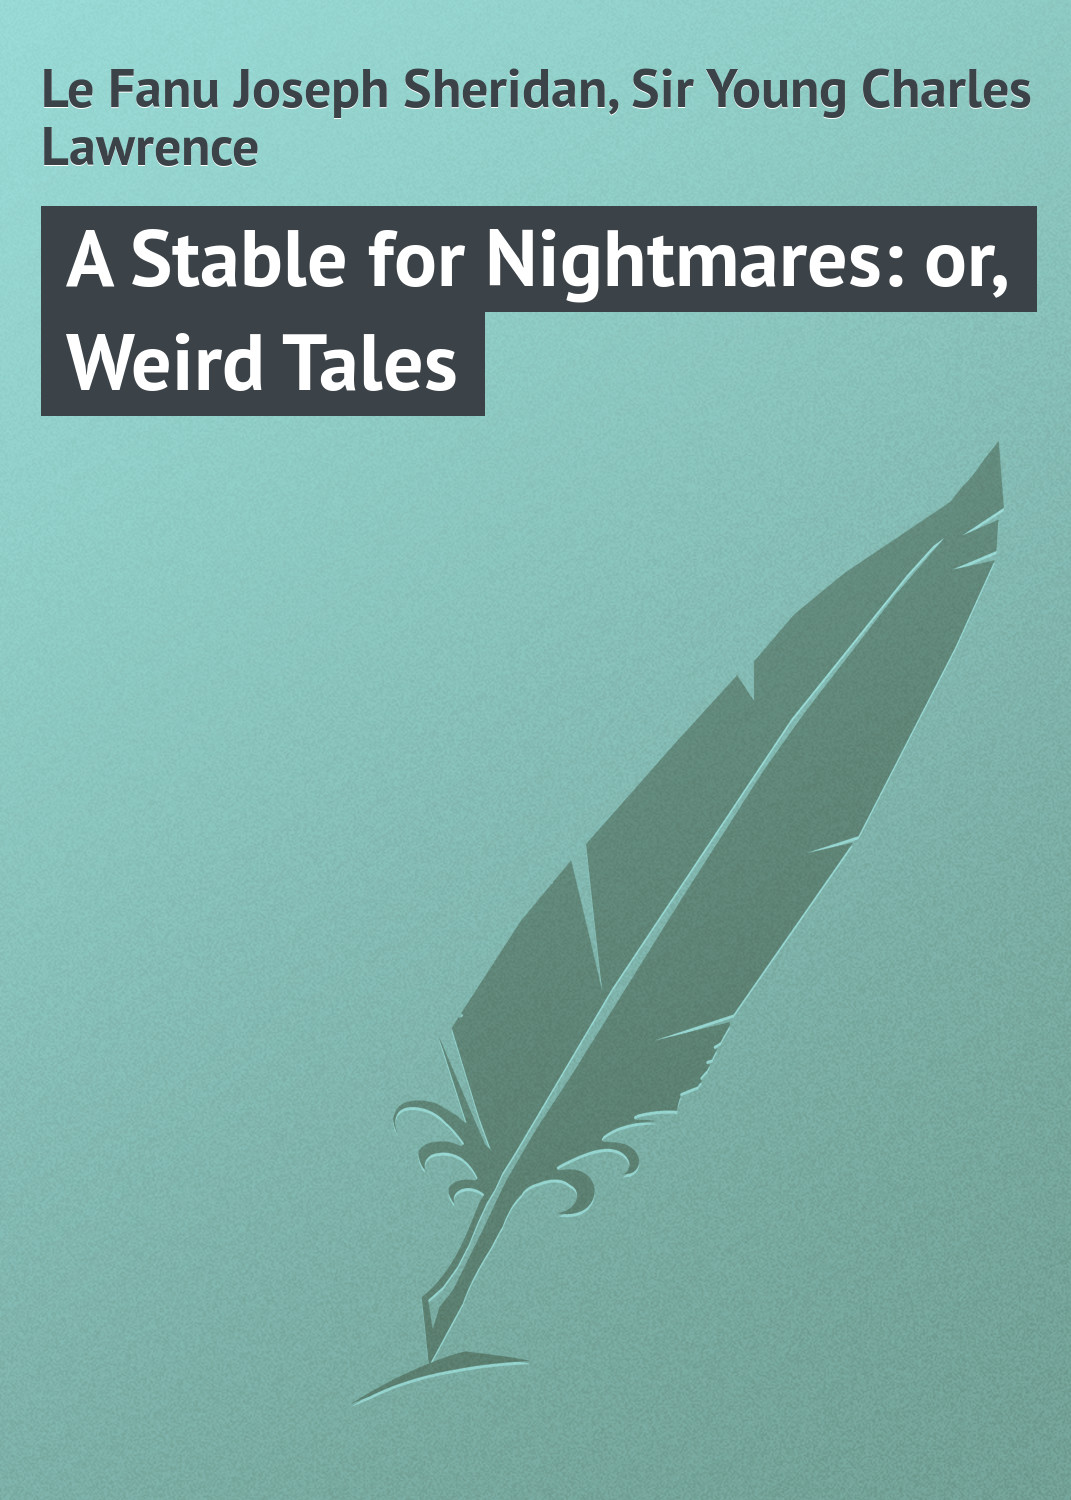 Le Fanu Joseph Sheridan A Stable for Nightmares: or, Weird Tales joseph sheridan le fanu in a glass darkly 3 carmilla